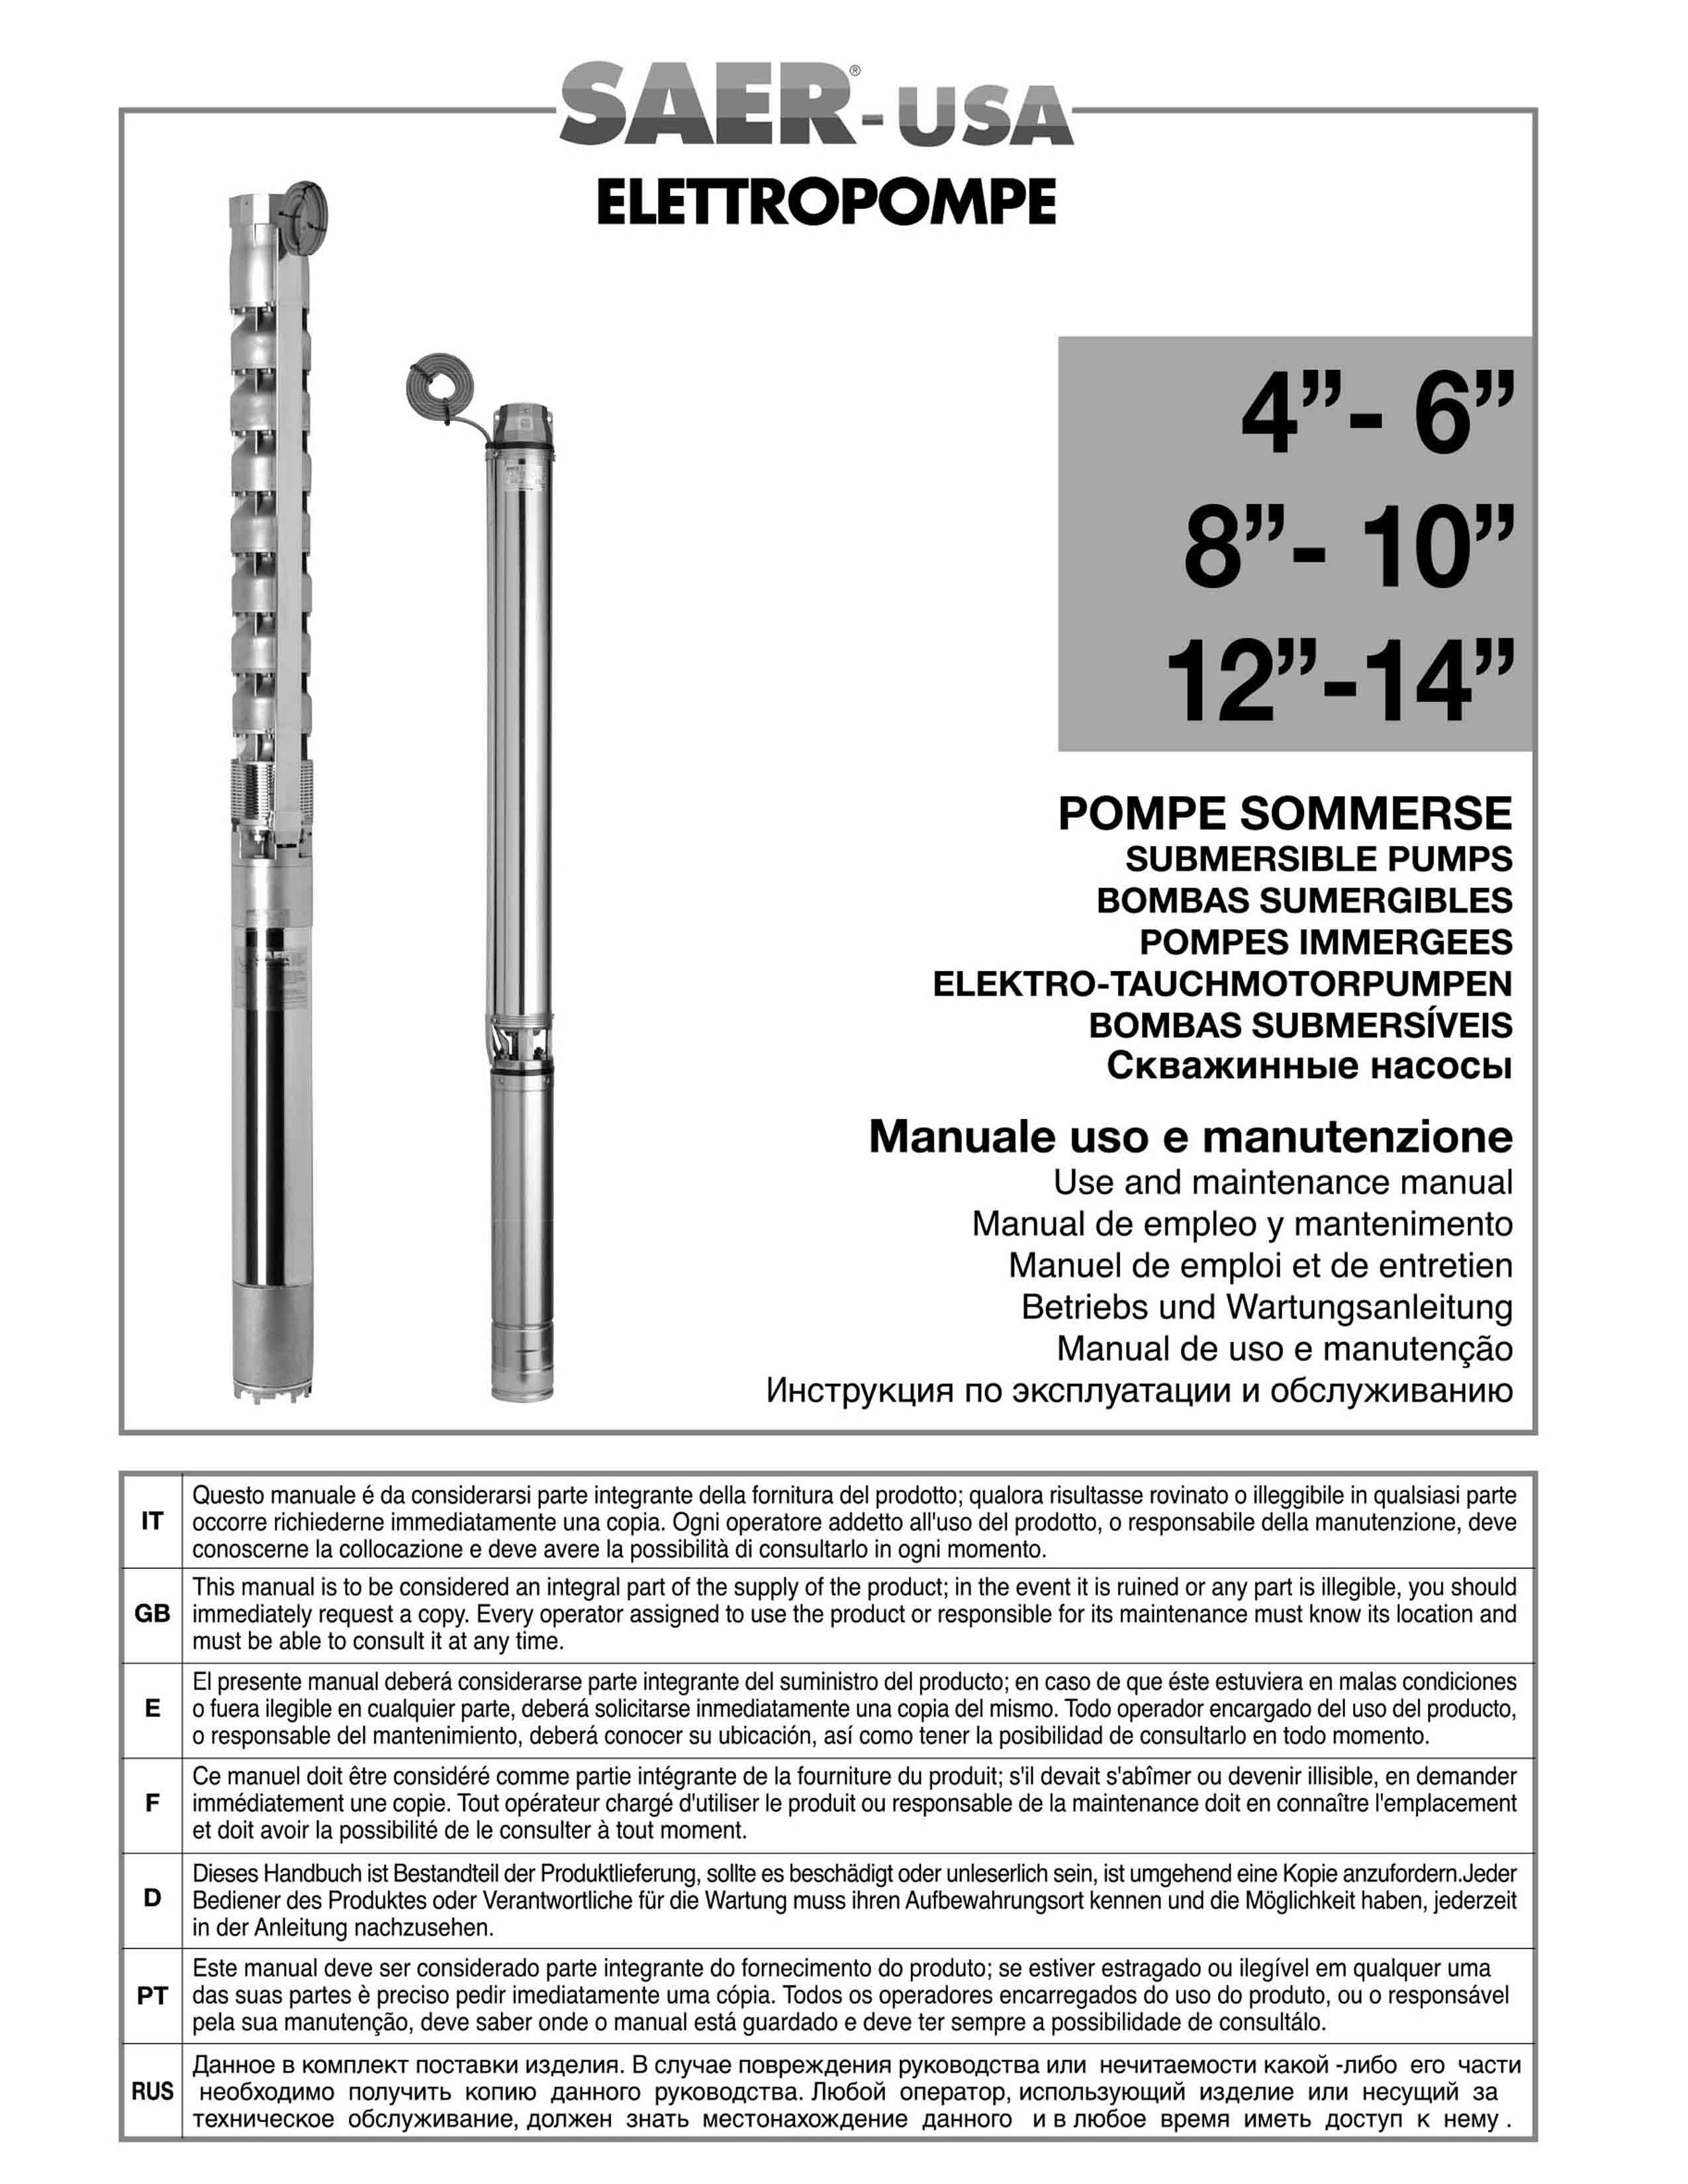 Submersible Pumps SAER-USA water pumps- water pumps in usa